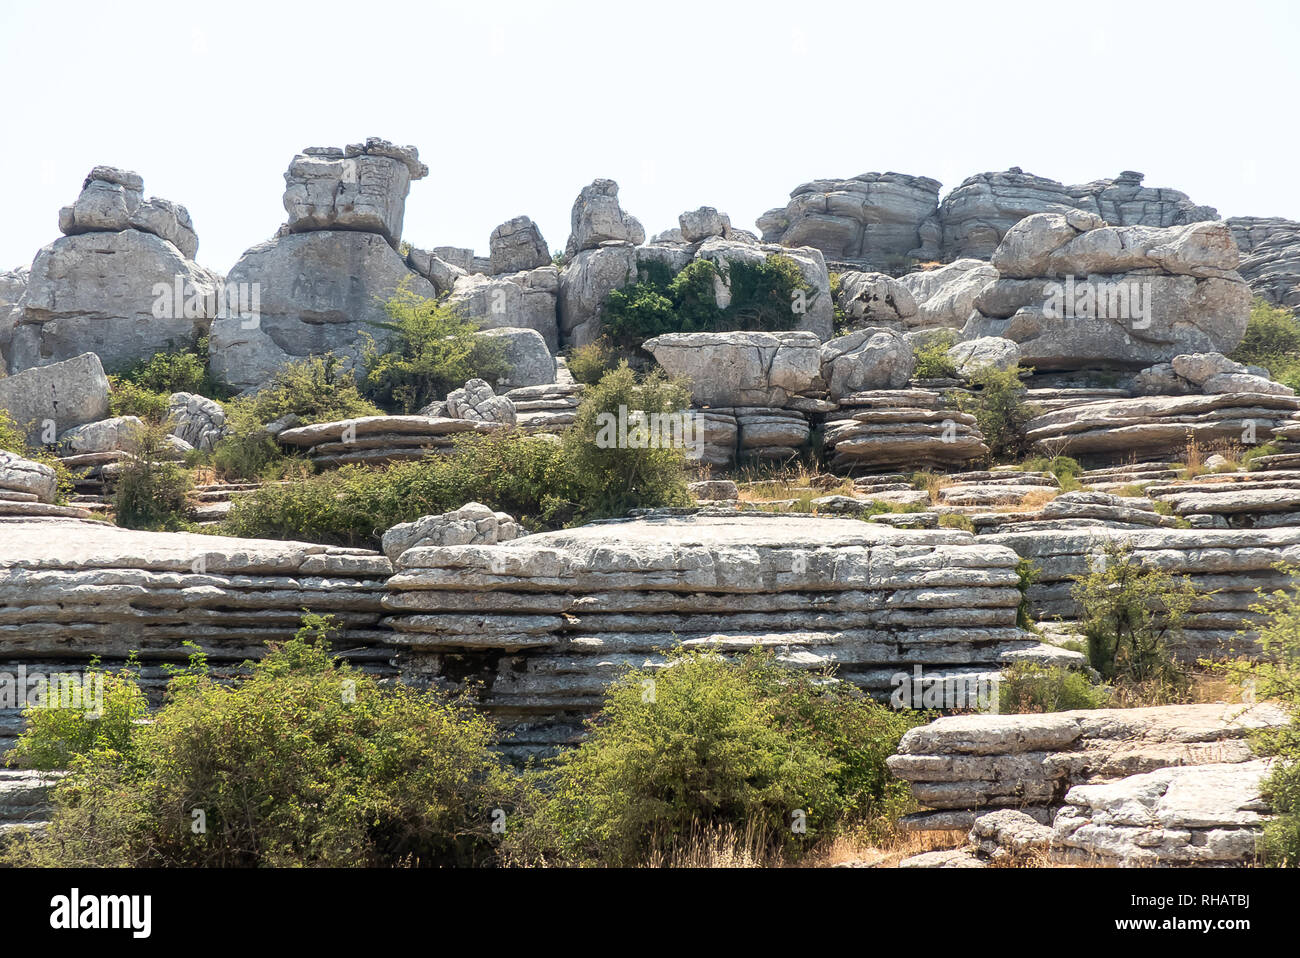 Andalucia in Spain: strange rock formations in the Torcal de Antequera natural park - Stock Image